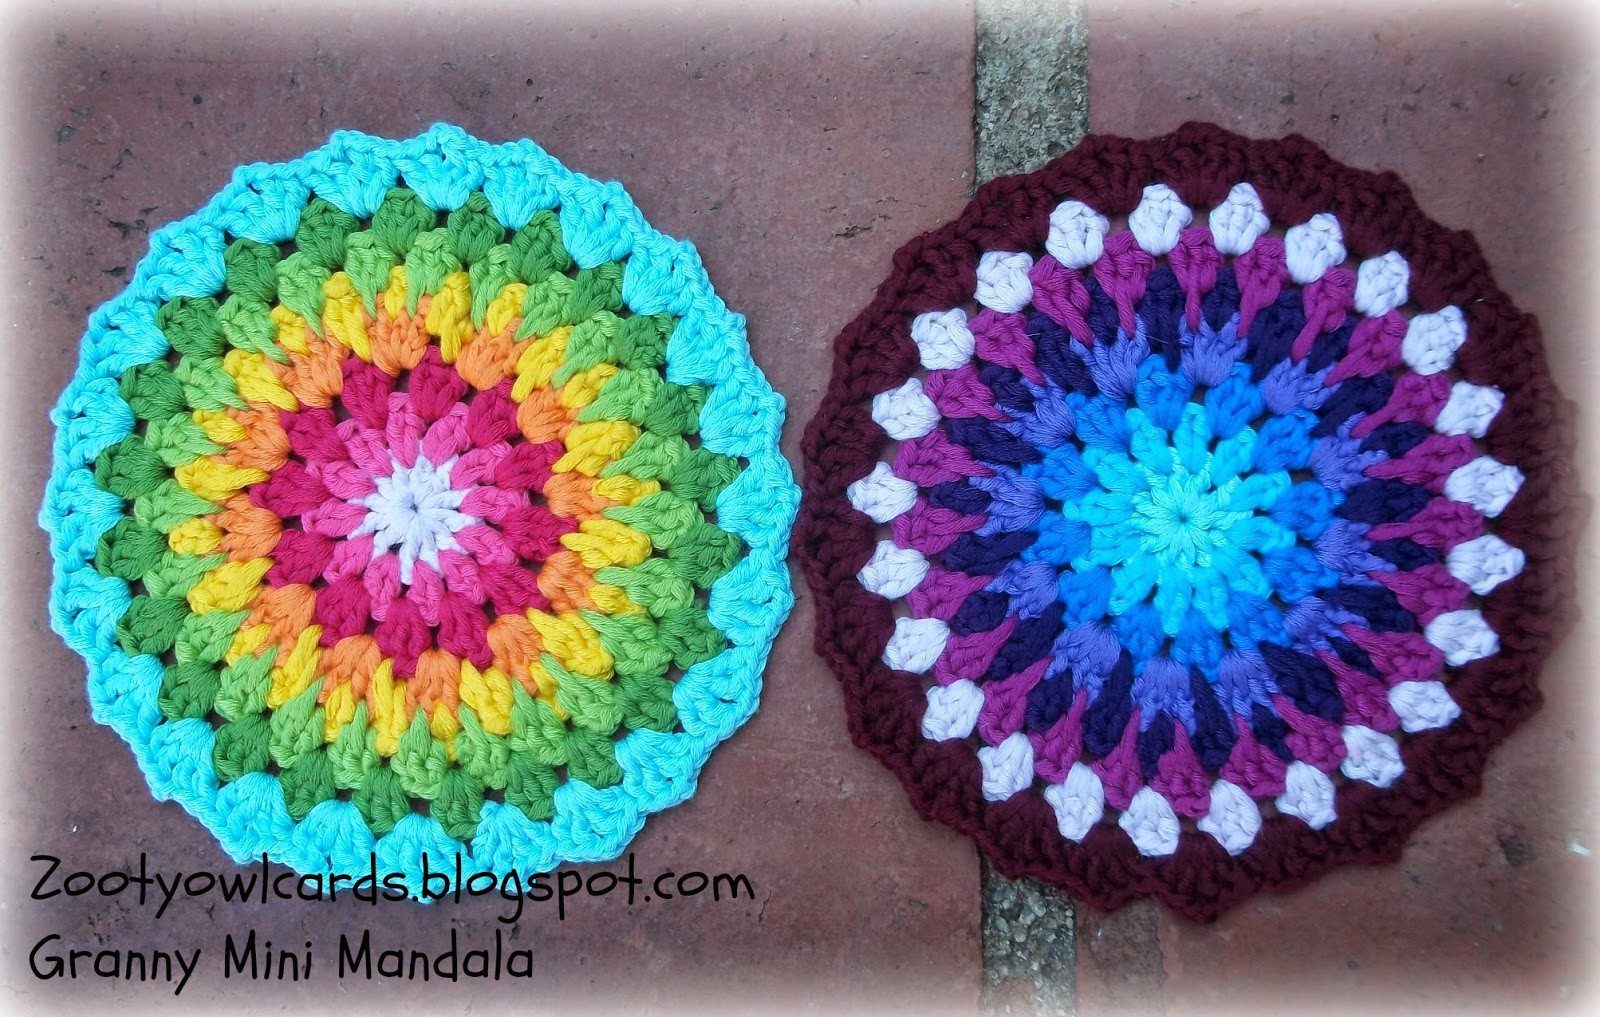 Crochet Mandalas Beautiful Zooty Owl S Crafty Blog Granny Mini Mandala Of Incredible 41 Pics Crochet Mandalas